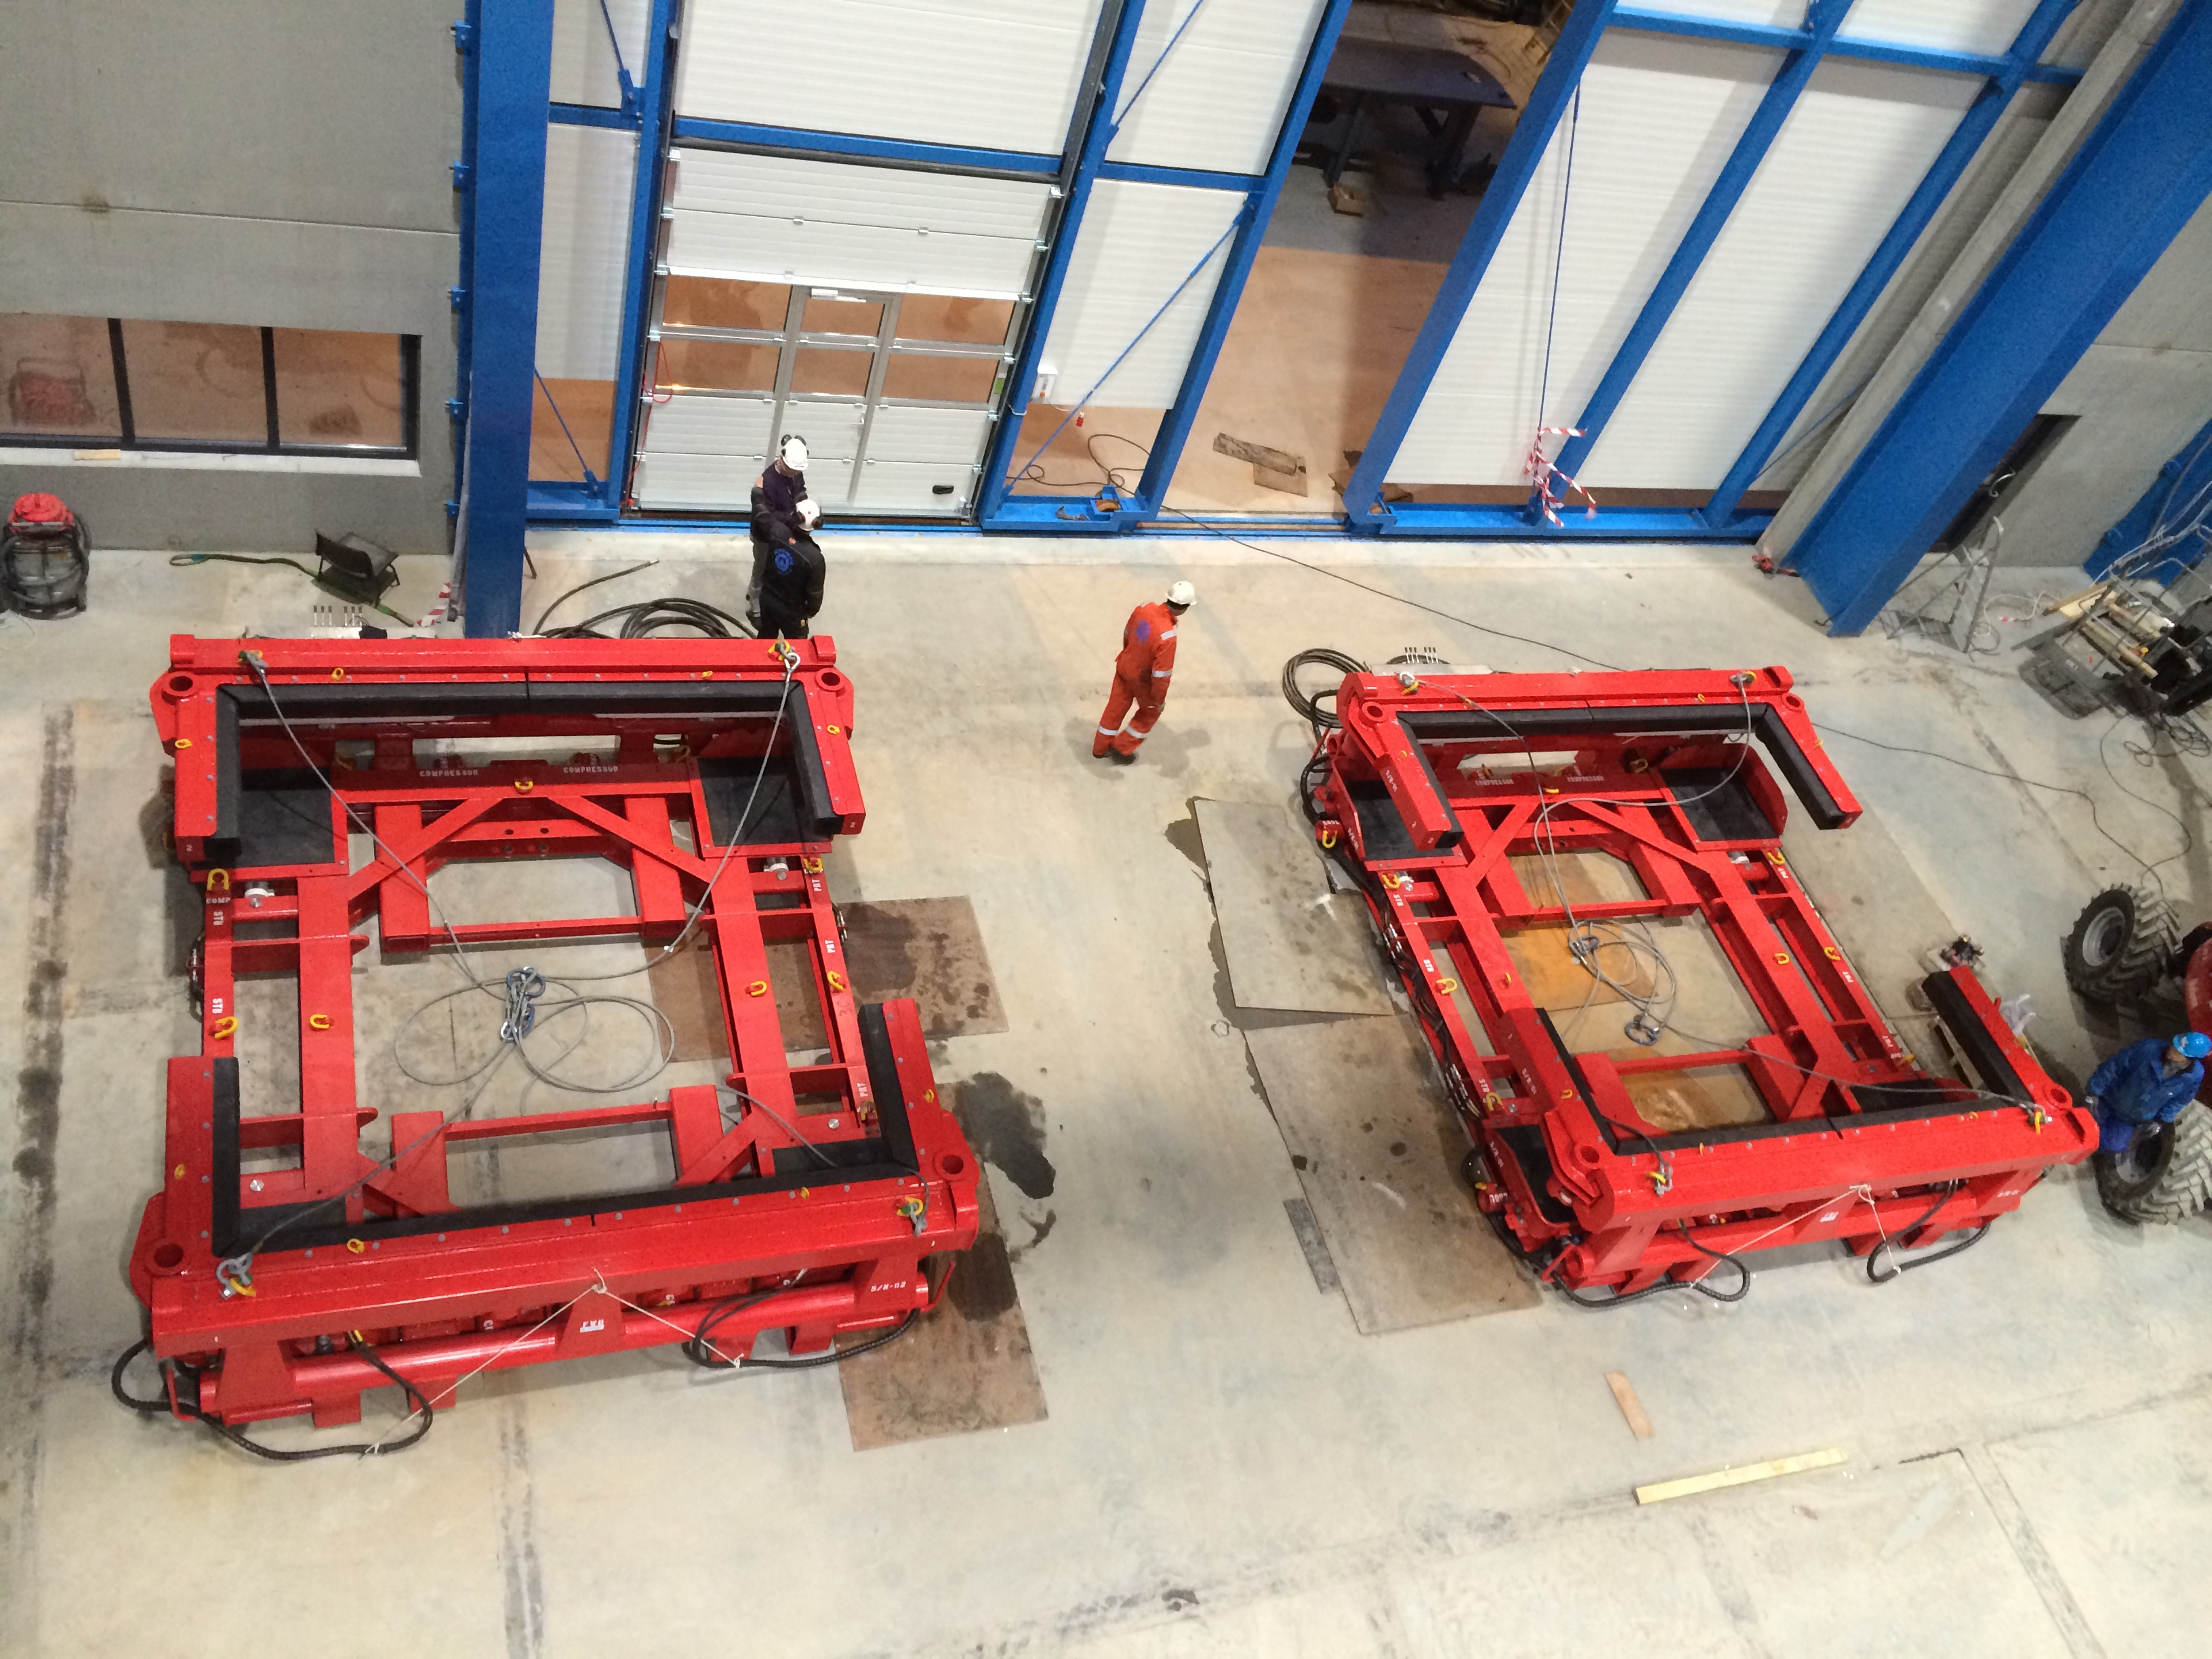 Picture of two Skidding Pallets